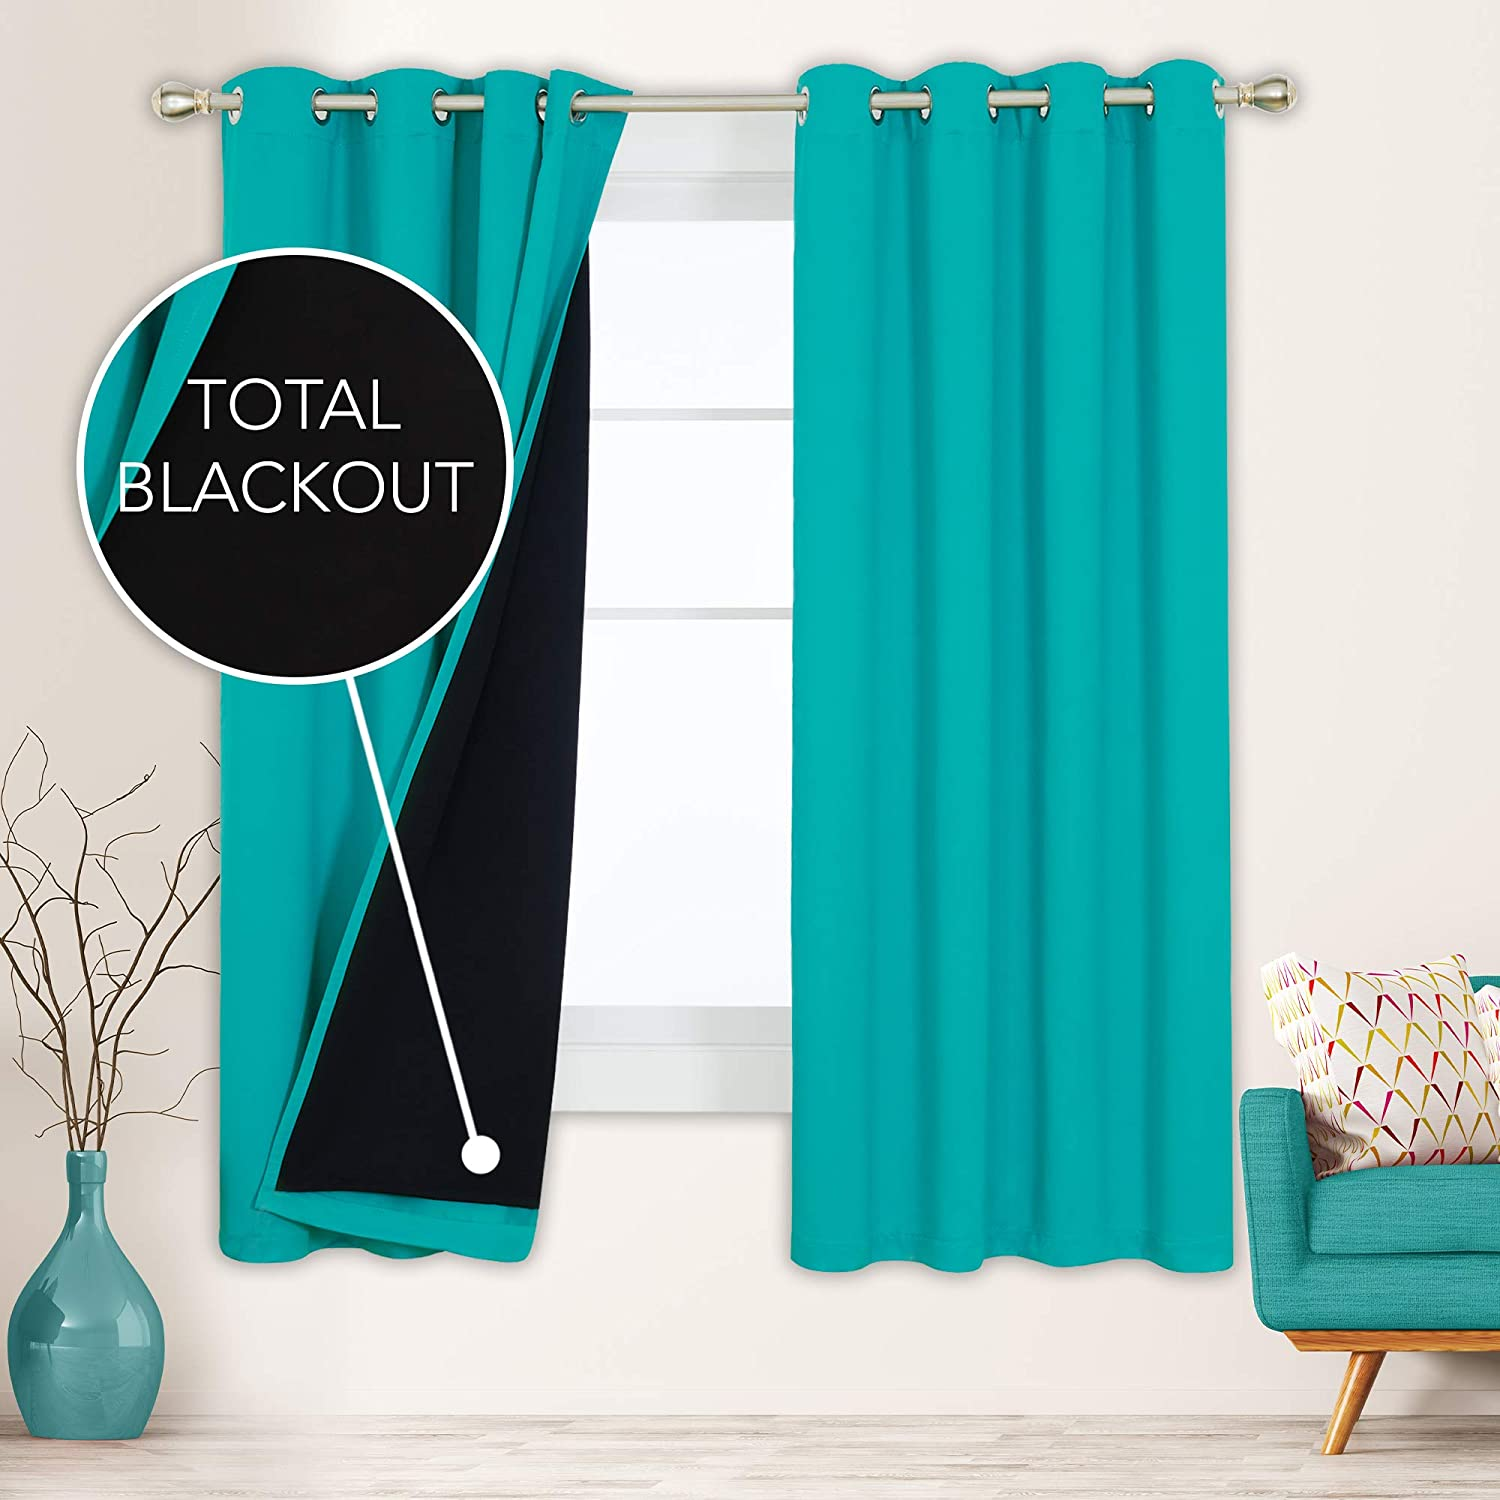 Deconovo Thermal Insulated 100% Blackout Curtains Double Layers Total Sun Light Full Block with Liner Noise Cancelling Drapes for Home Windows Playroom Patio Office, 2 Panels, Each 52x72 in, Teal